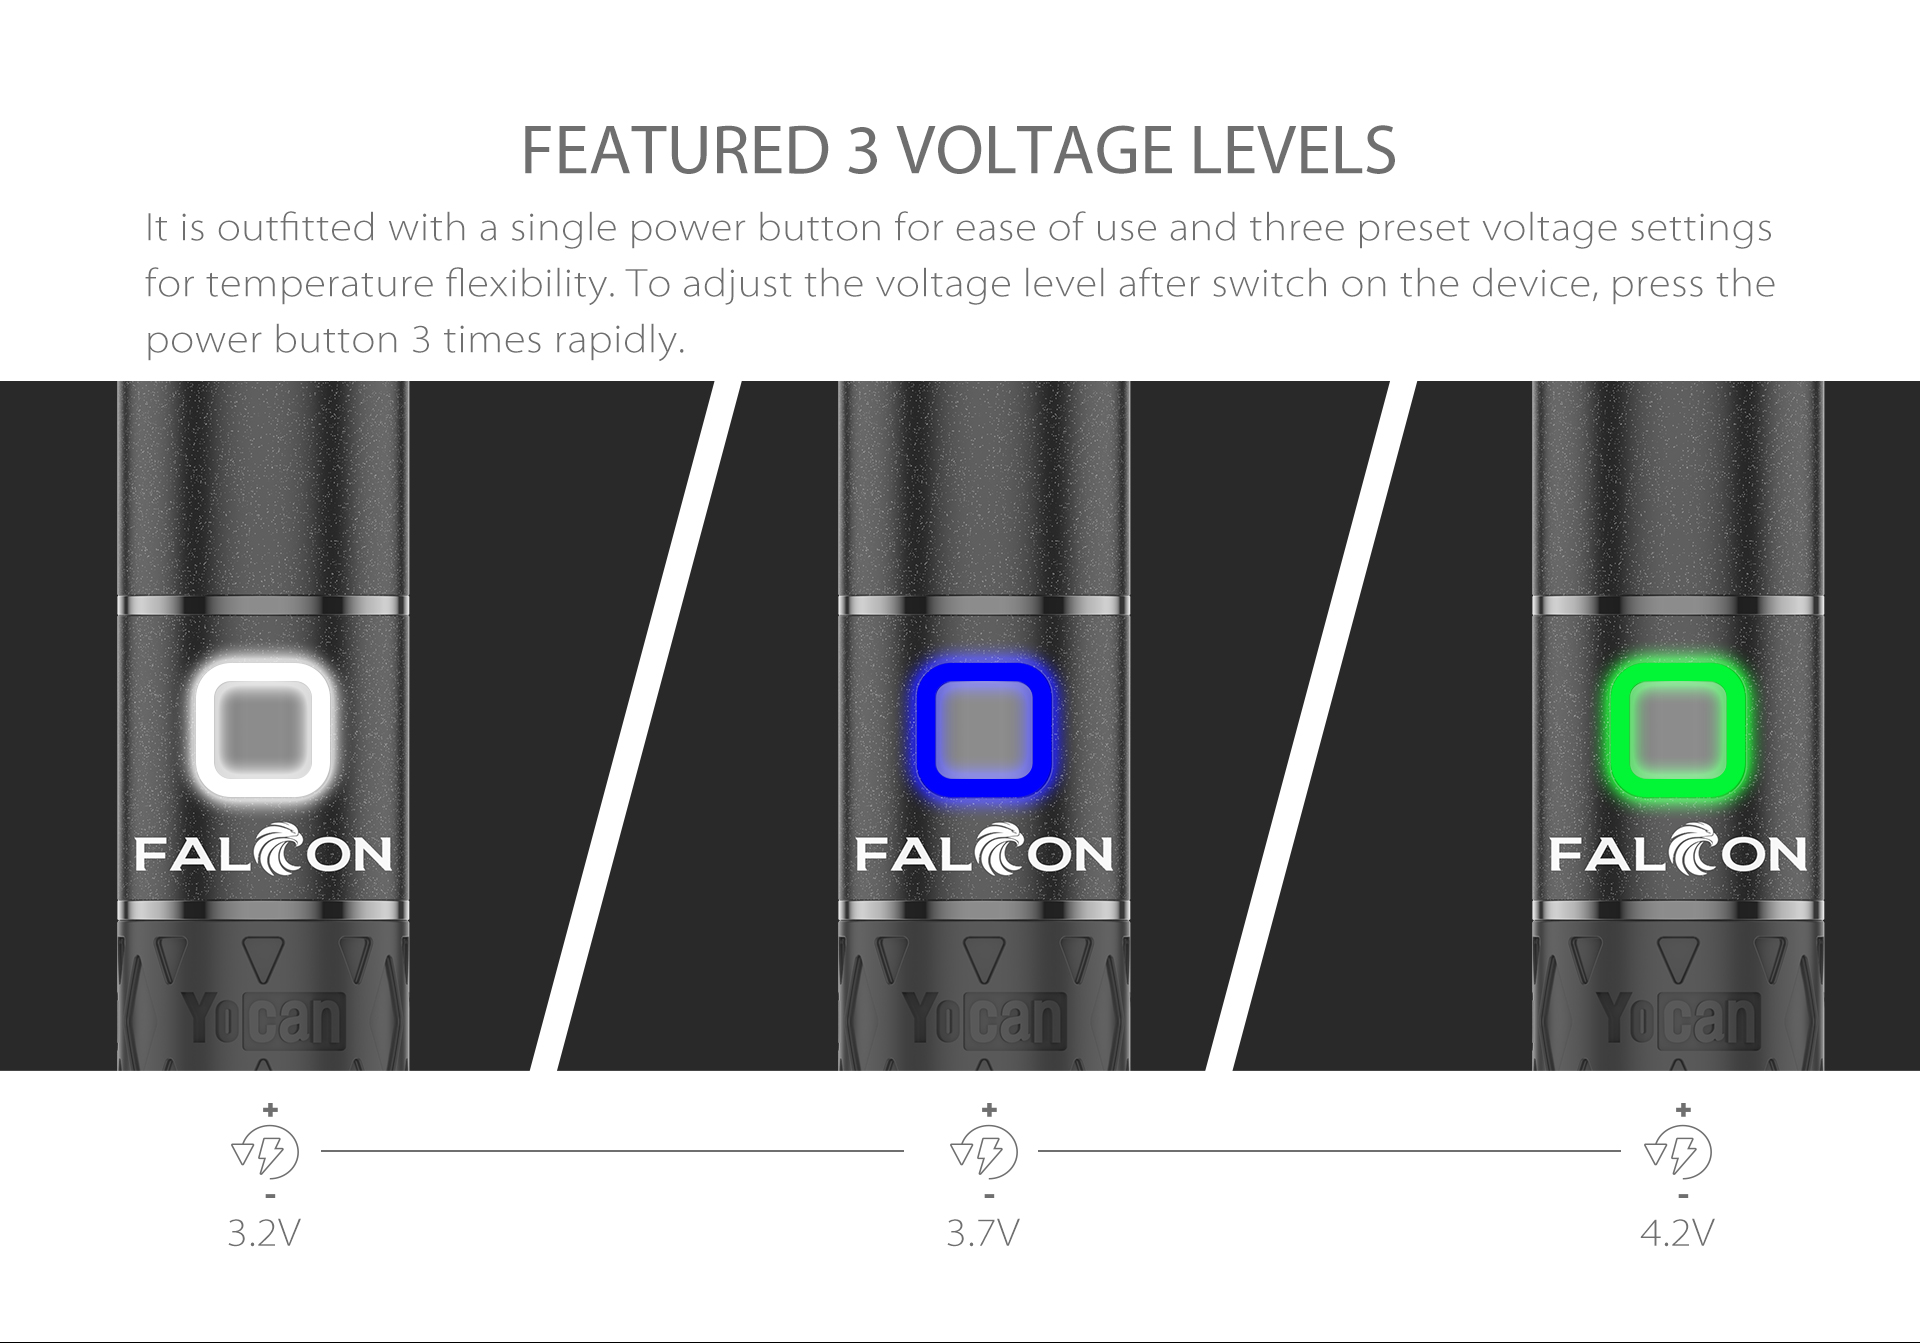 Yocan Falcon Vaporizer is outfitted with a single power button for ease of use and three preset voltage